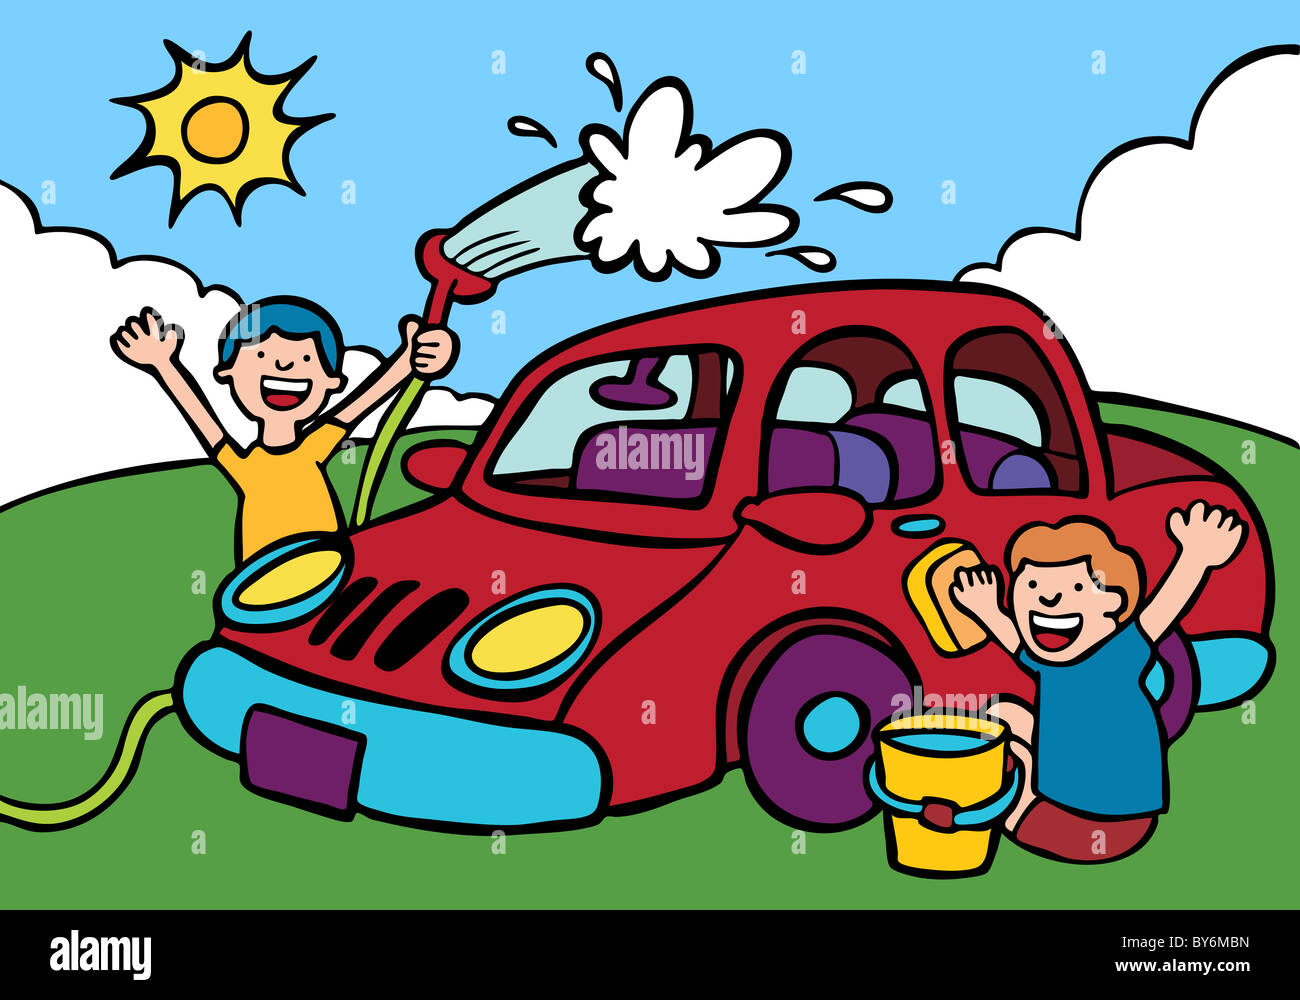 Cartoon Image Of Kids Washing Car Stock Photo 33953801 Alamy